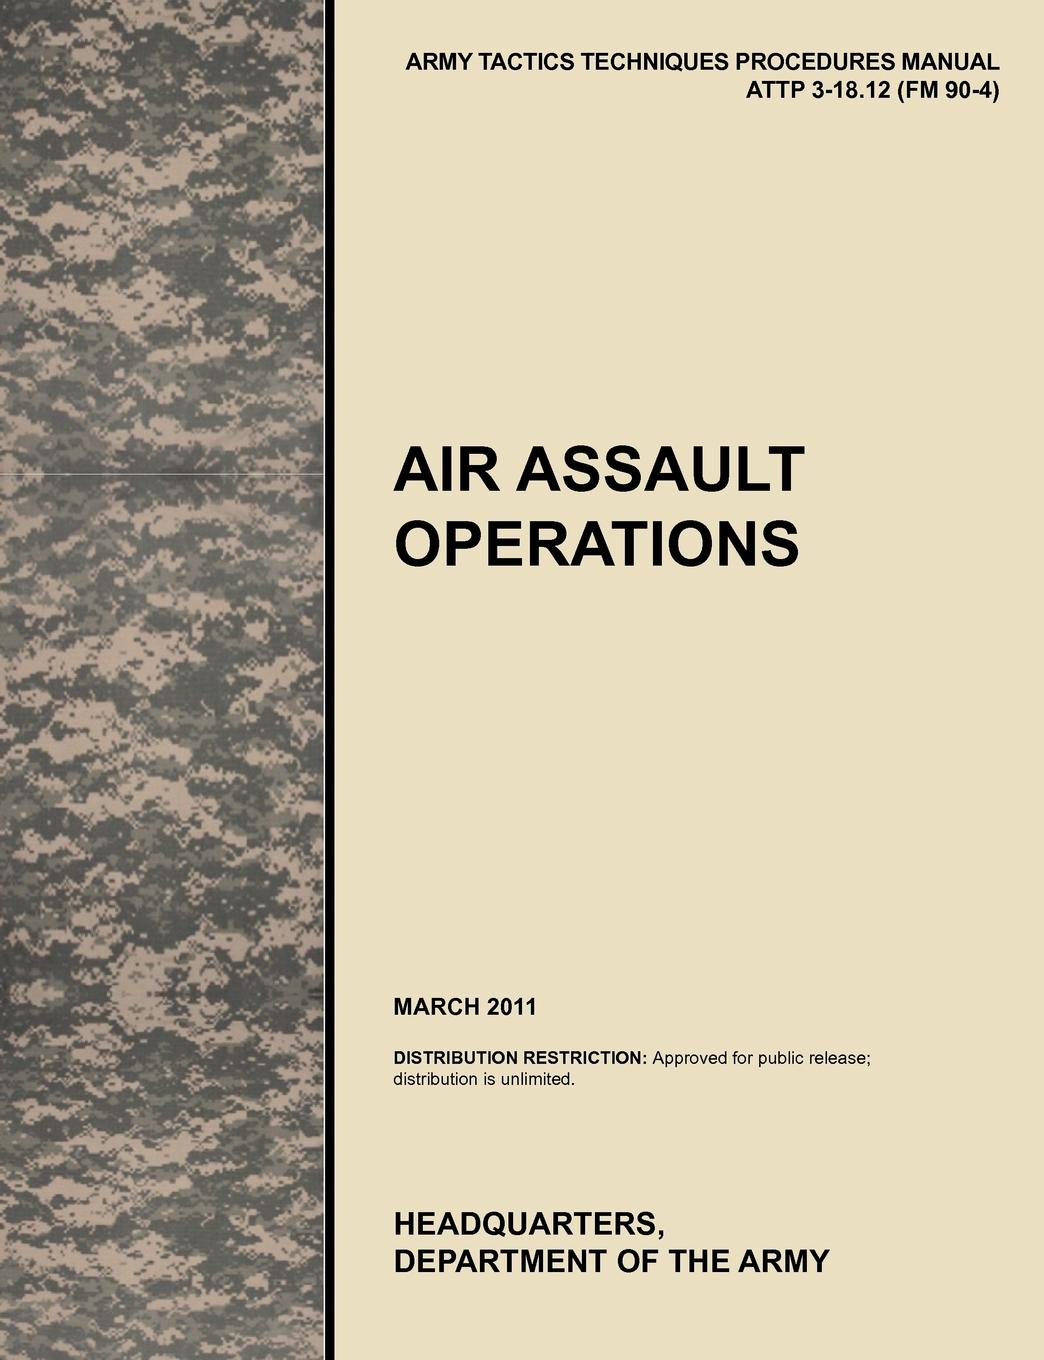 U. S. Army Training and Doctrine Command, Army Maneuver Center of Excellence, U. S. Department of the Air Assault Operations. The Official U.S. Army Tactics, Techniques, and Procedures Manual Attp 3-18.12 (FM 90-4), March 2011 leadership center for army and us army the u s army leadership field manual fm 22 100